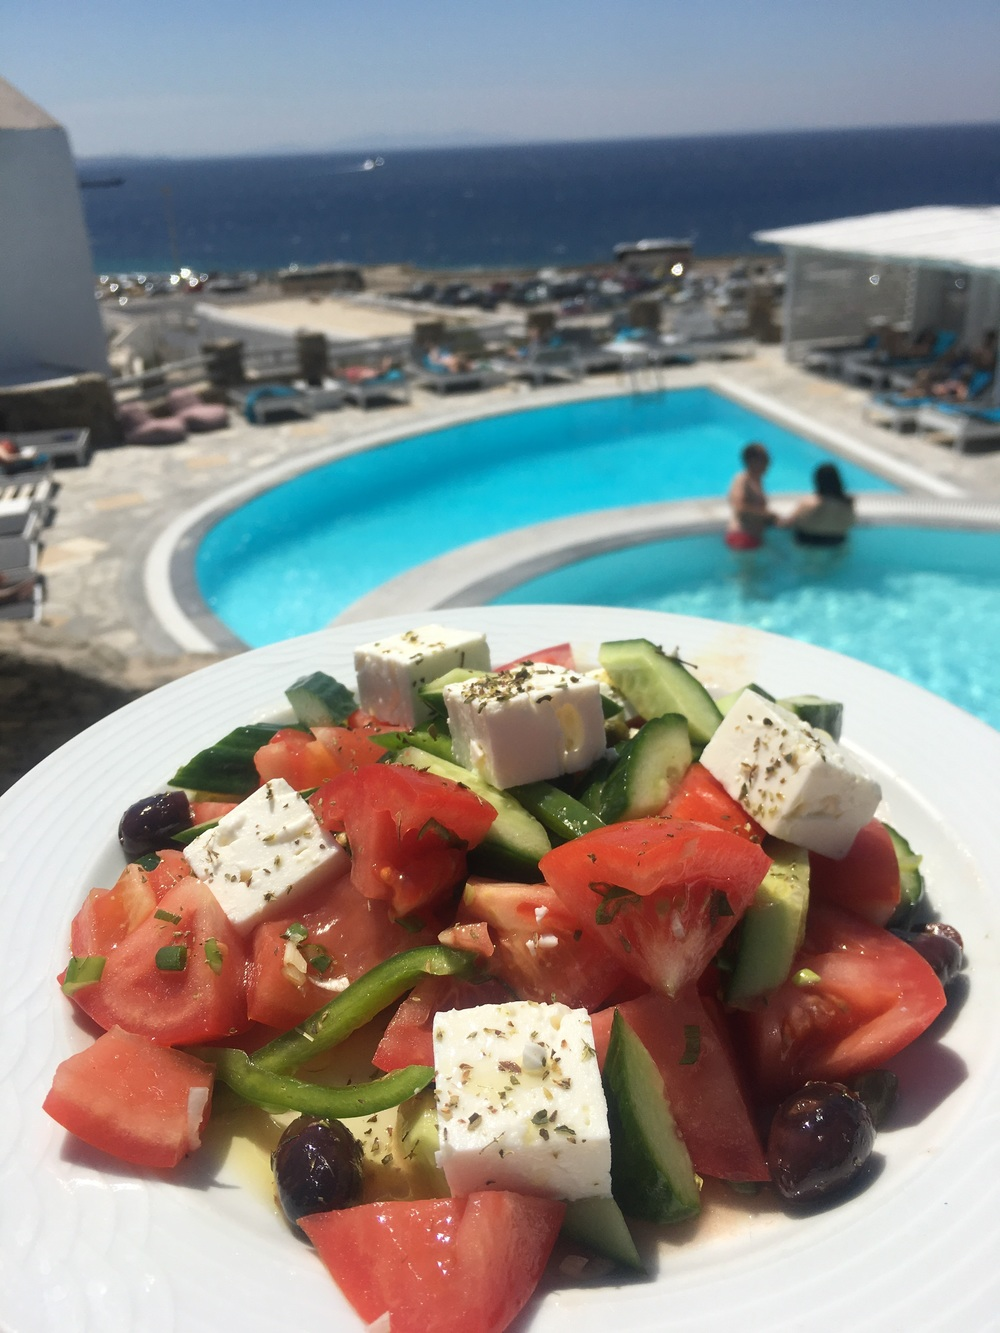 Those Greek salads